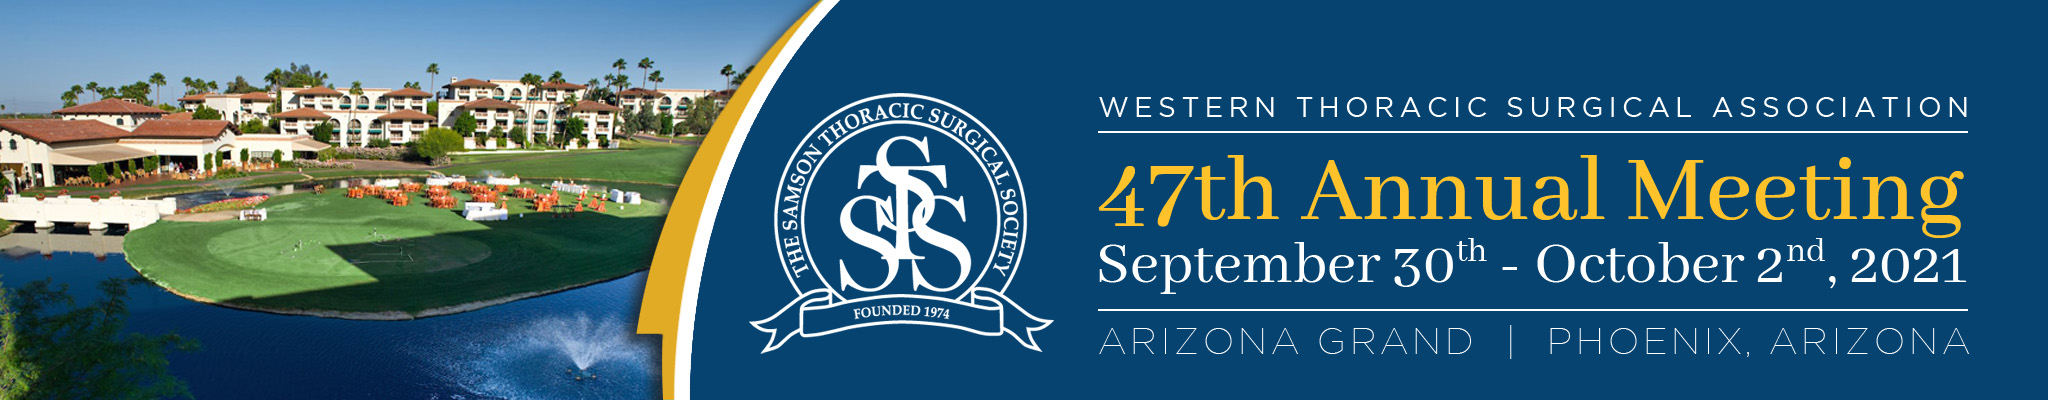 WTSA 47th Annual Meeting